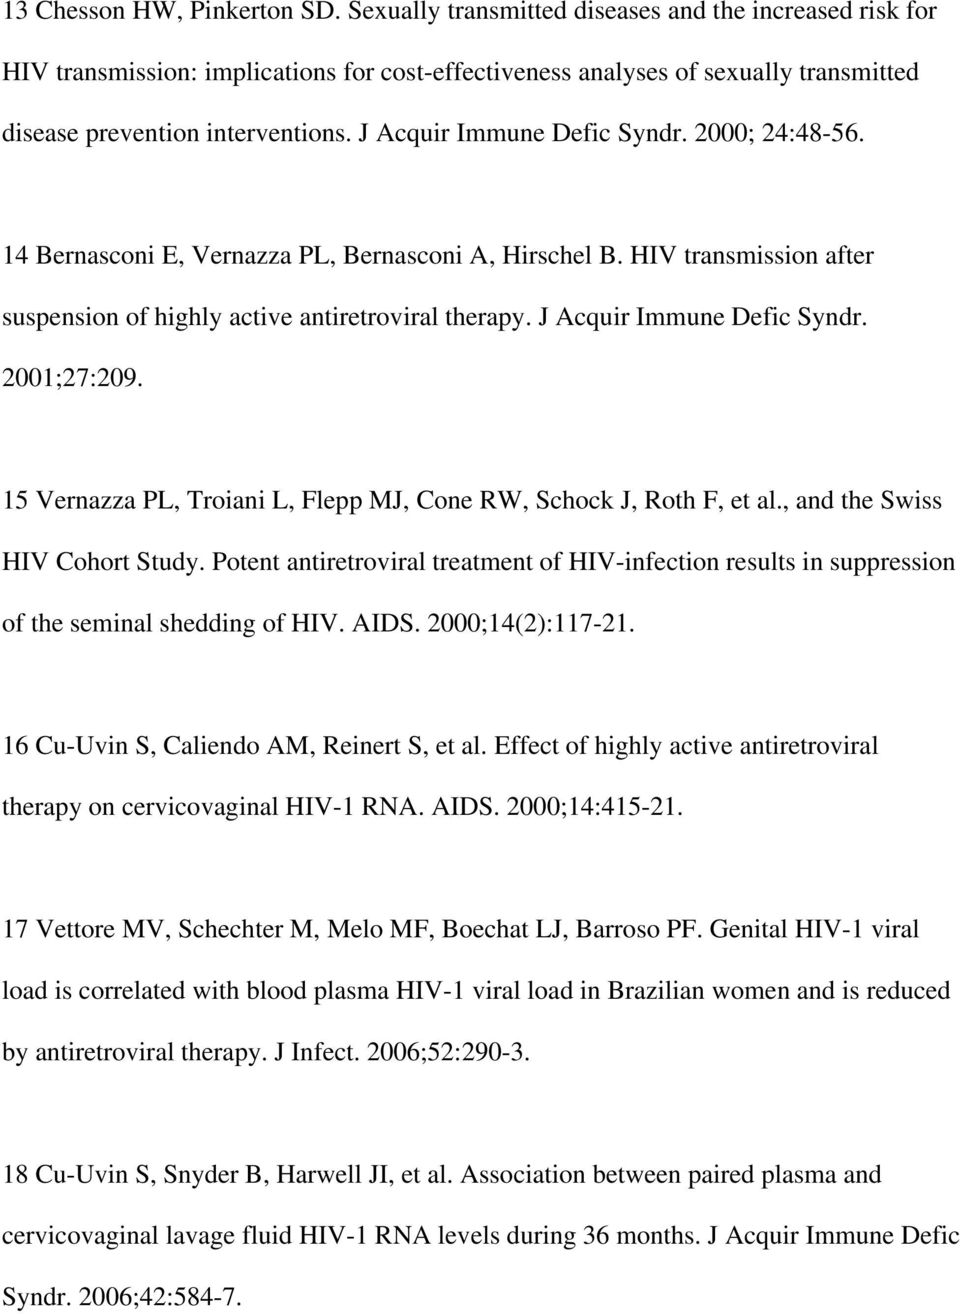 J Acquir Immune Defic Syndr. 2000; 24:48-56. 14 Bernasconi E, Vernazza PL, Bernasconi A, Hirschel B. HIV transmission after suspension of highly active antiretroviral therapy.